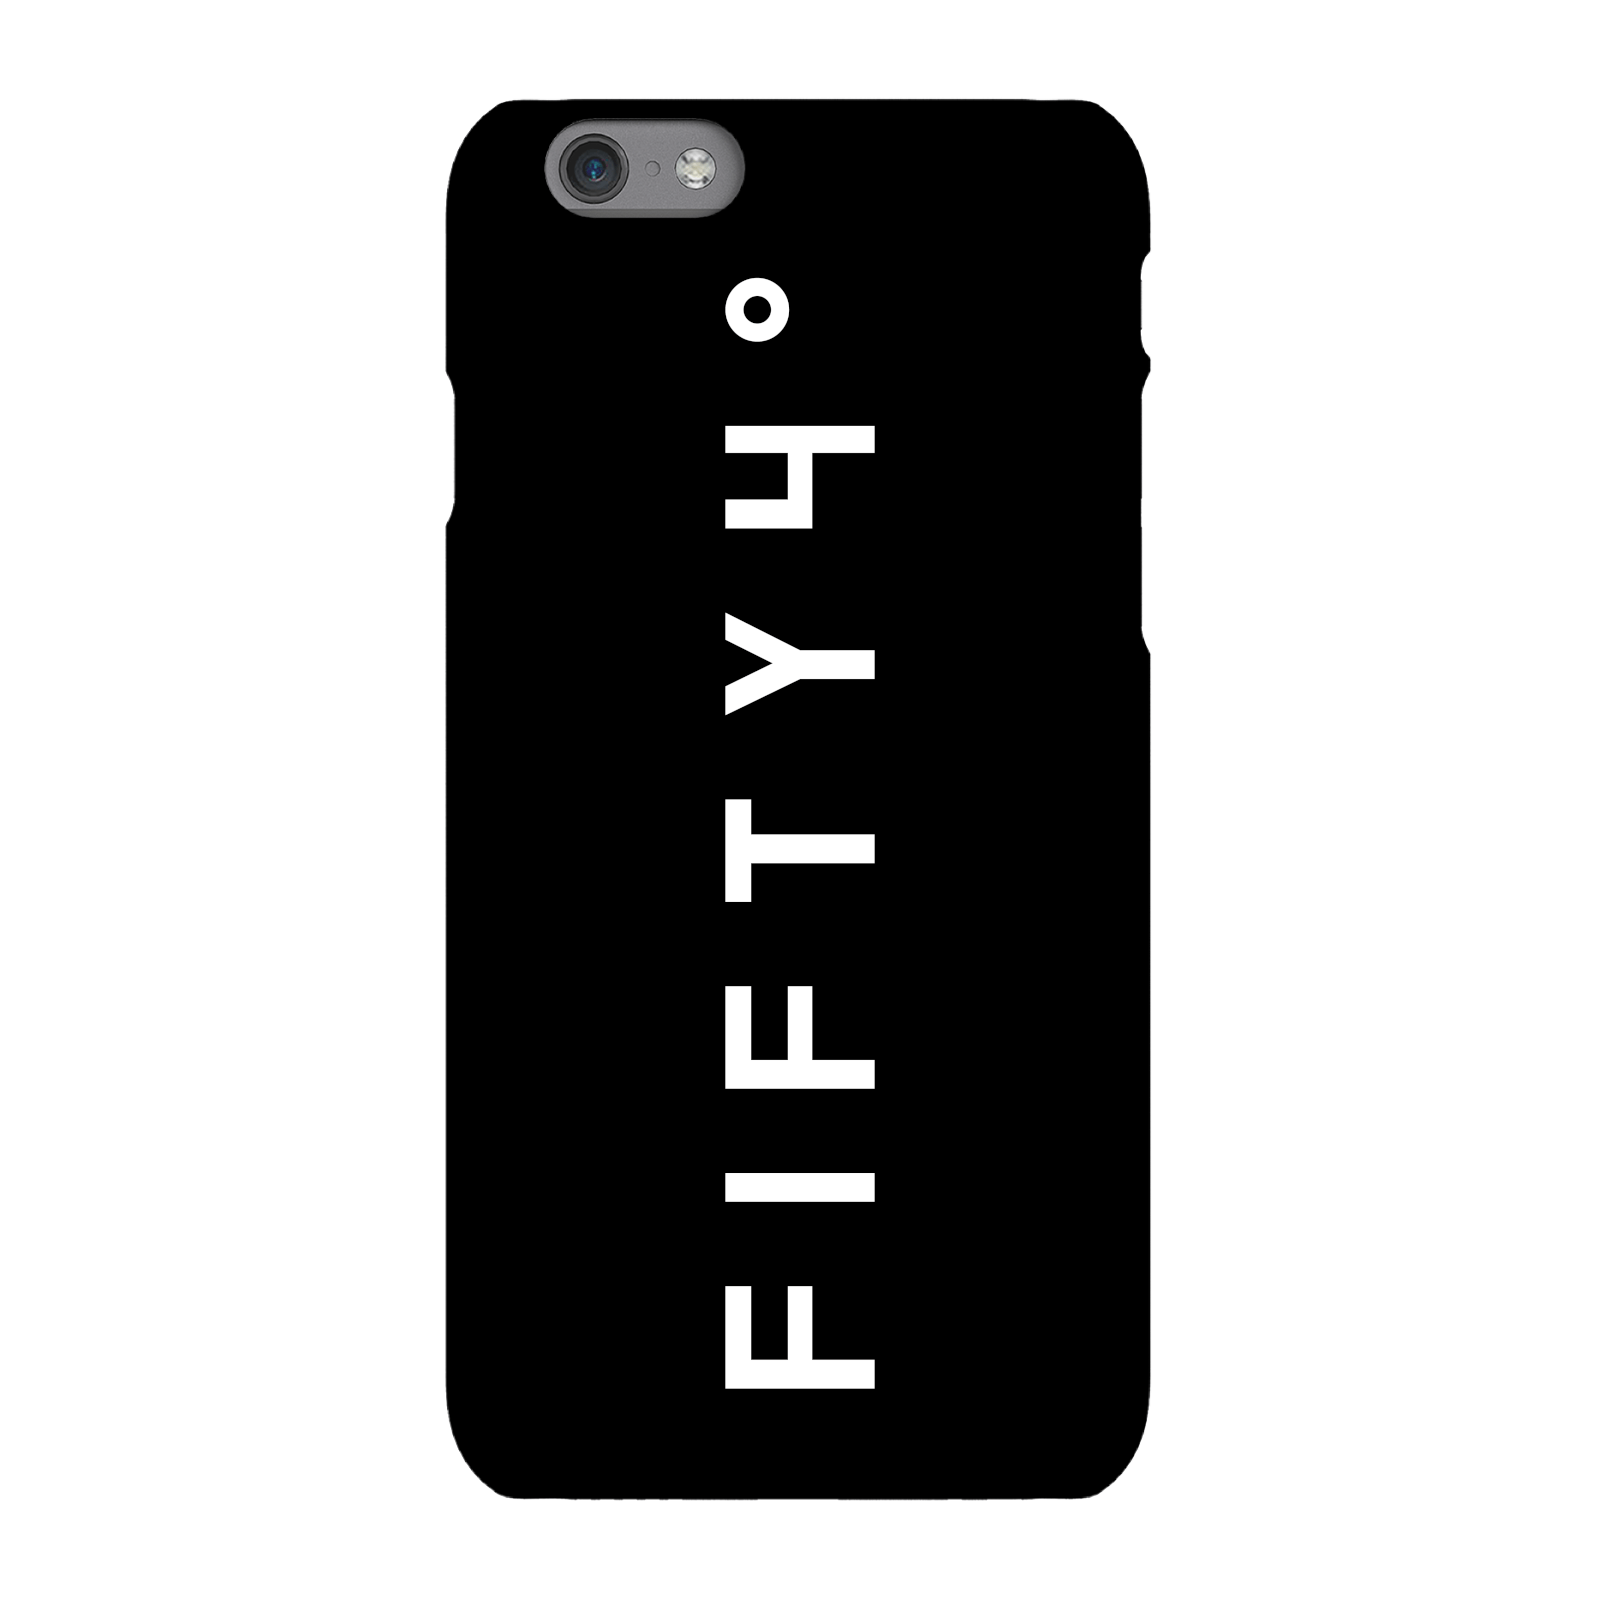 Fifty Four Degree Apparel Dark Phone Case for iPhone and Android - iPhone 6 Plus - Tough Case - Gloss